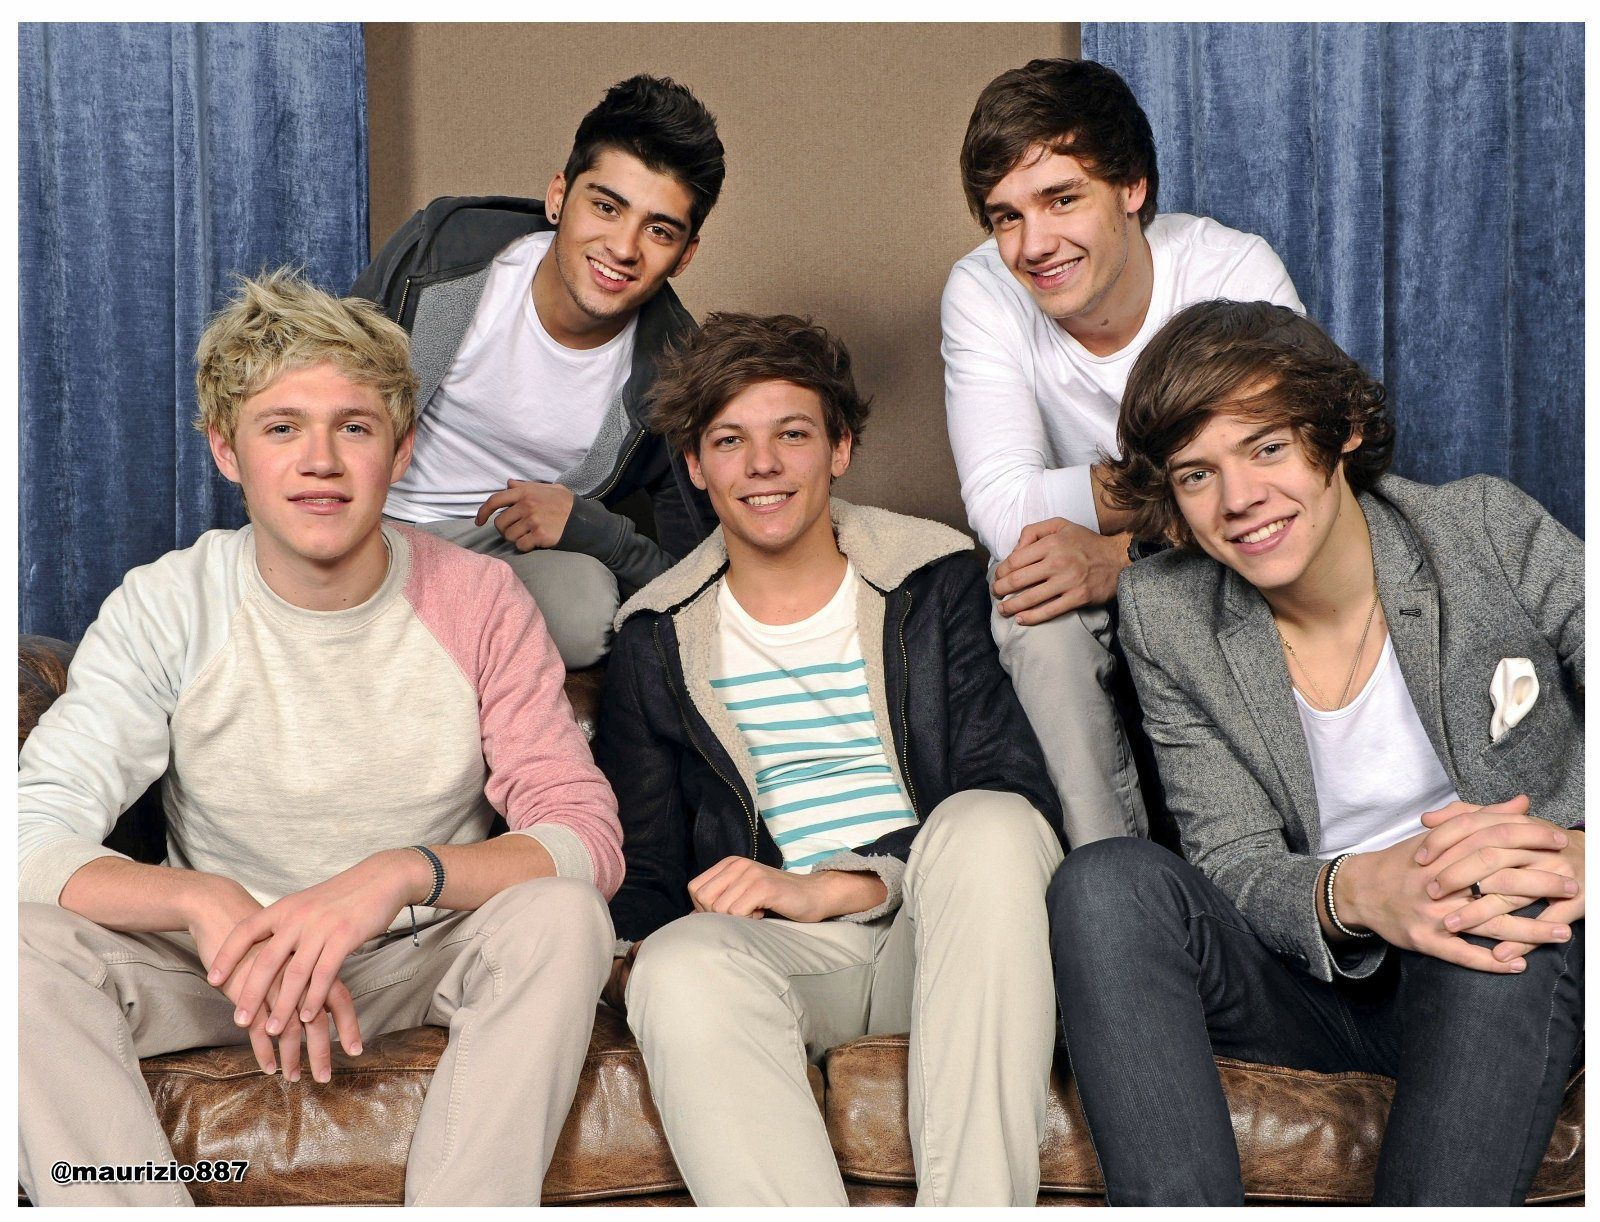 one direction, Photoshoots 2012 #onedirection2014 one direction pictures | one direction, Photoshoots 2012 - One Direction Photo (32604080 ... #onedirection2014